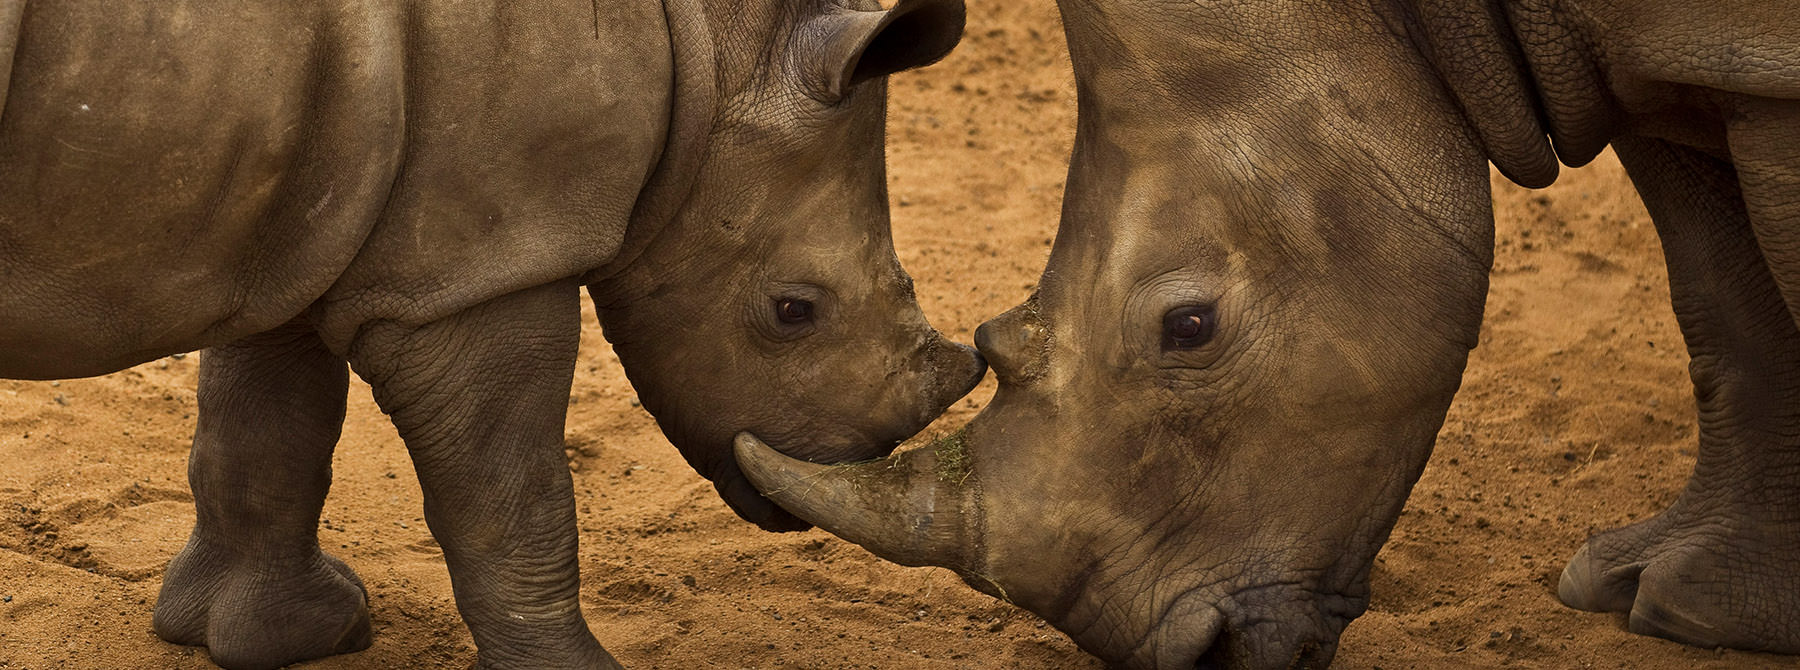 White Rhino and her calf, South Africa © Brent Stirton / Getty Images / WWF-UK